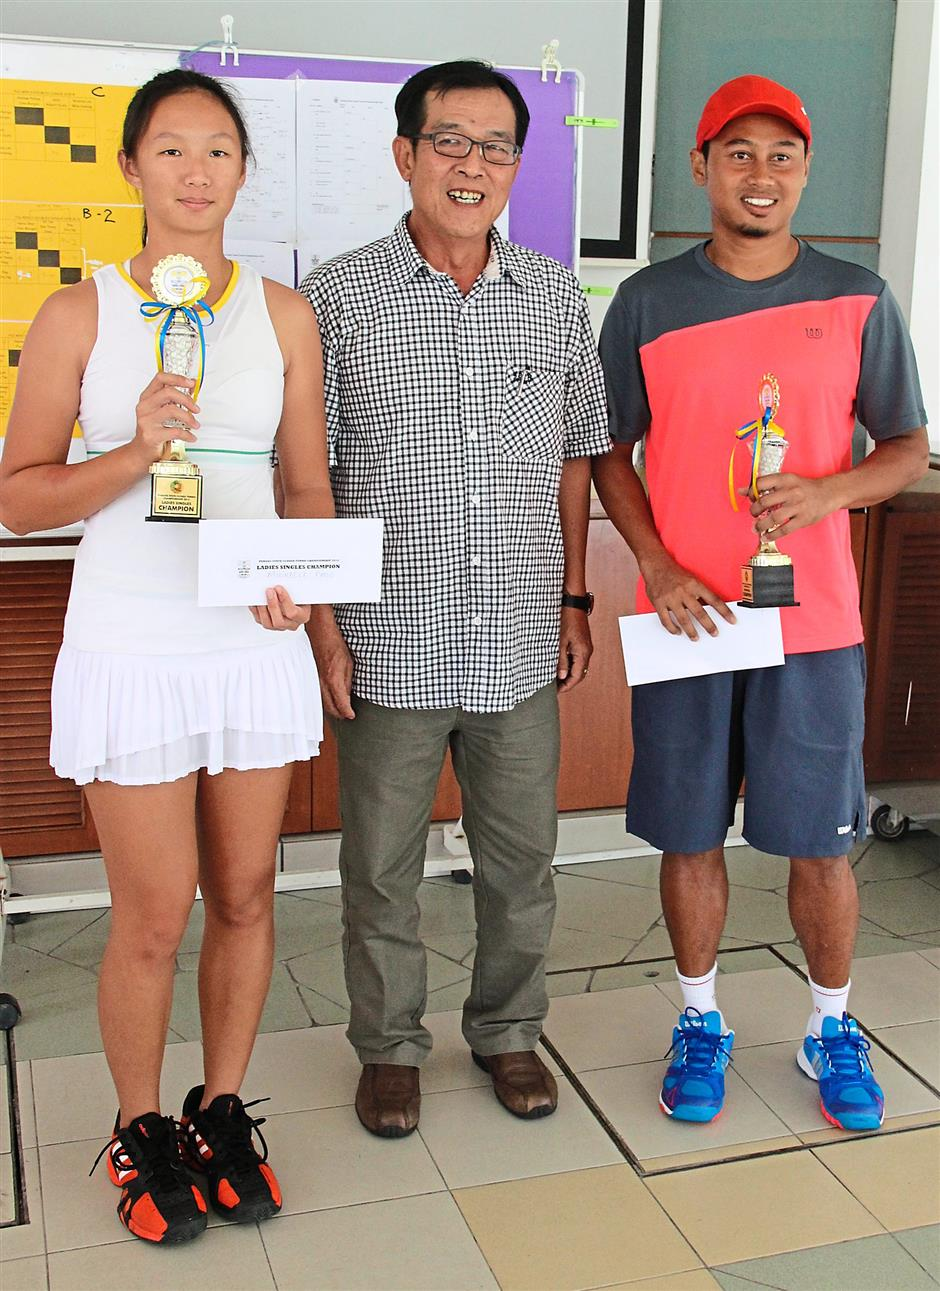 Well done: (From left) Michelle, Penang Lawn Tennis Association president Hang Kok Long and Muhammad Noor Noordin posing for the press after the prize presentation ceremony at the Penang Closed Tennis championship.